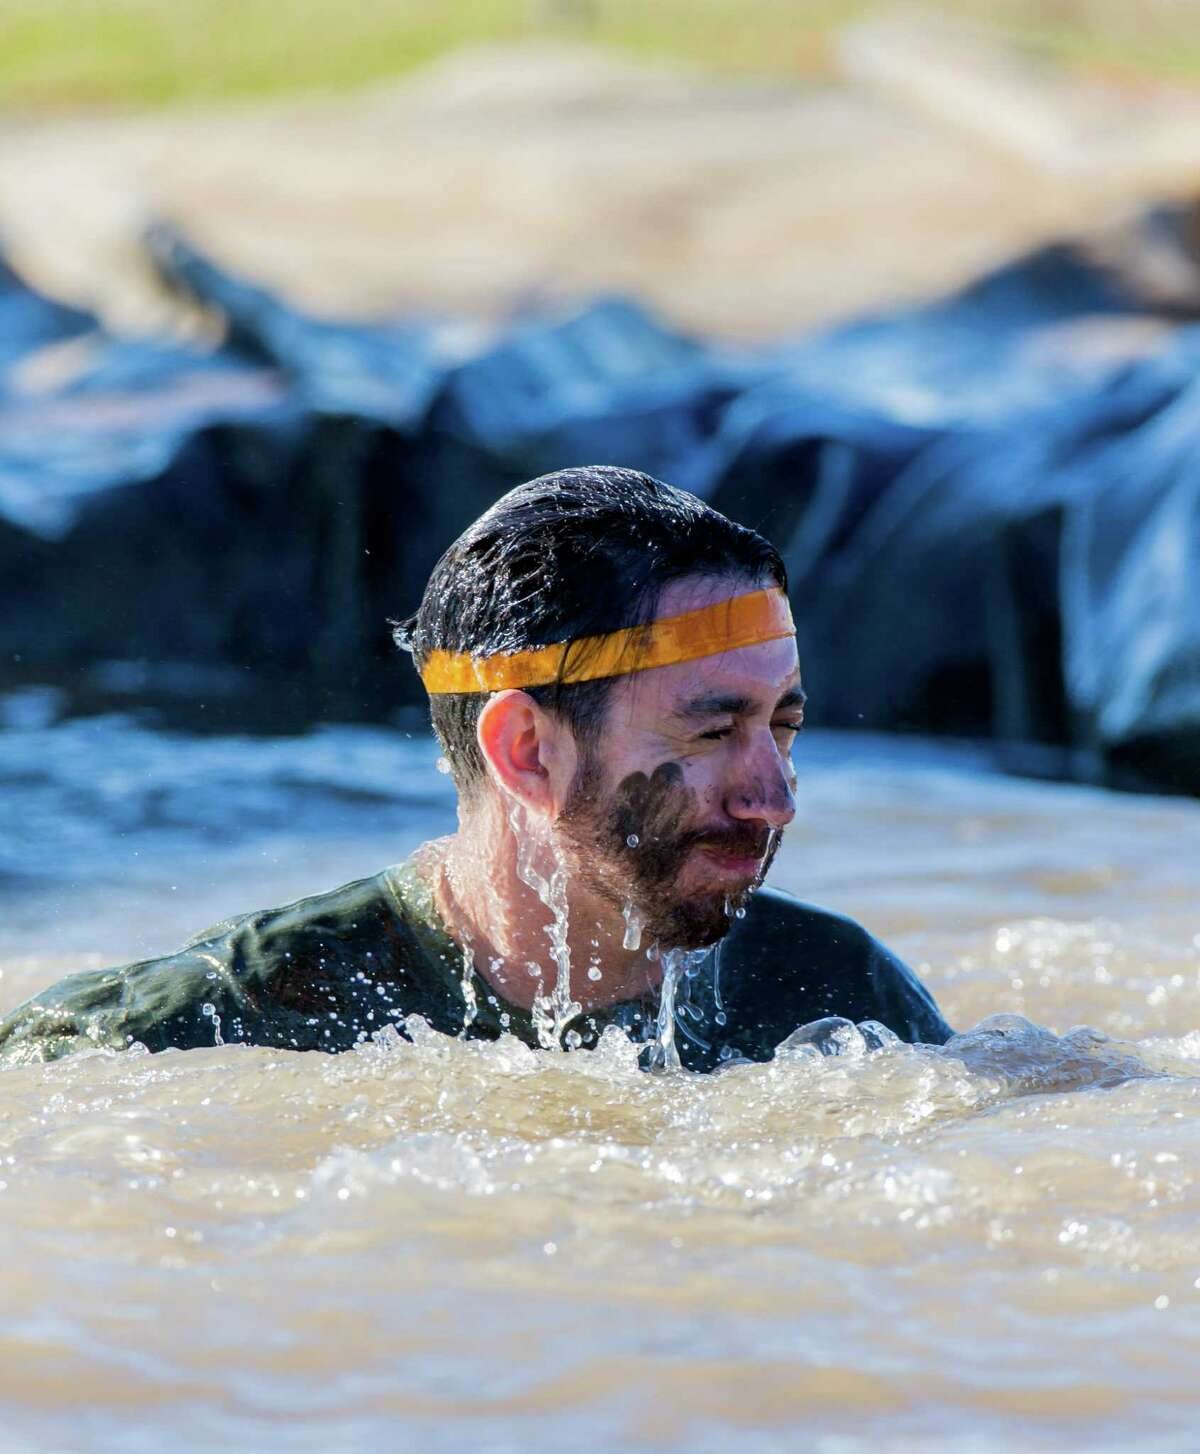 A muckers reacting as he comes up for air in a pool of muddy water during the MuckFest at Royal Purple Raceway, Saturday, Nov. 14, 2015, in Baytown.